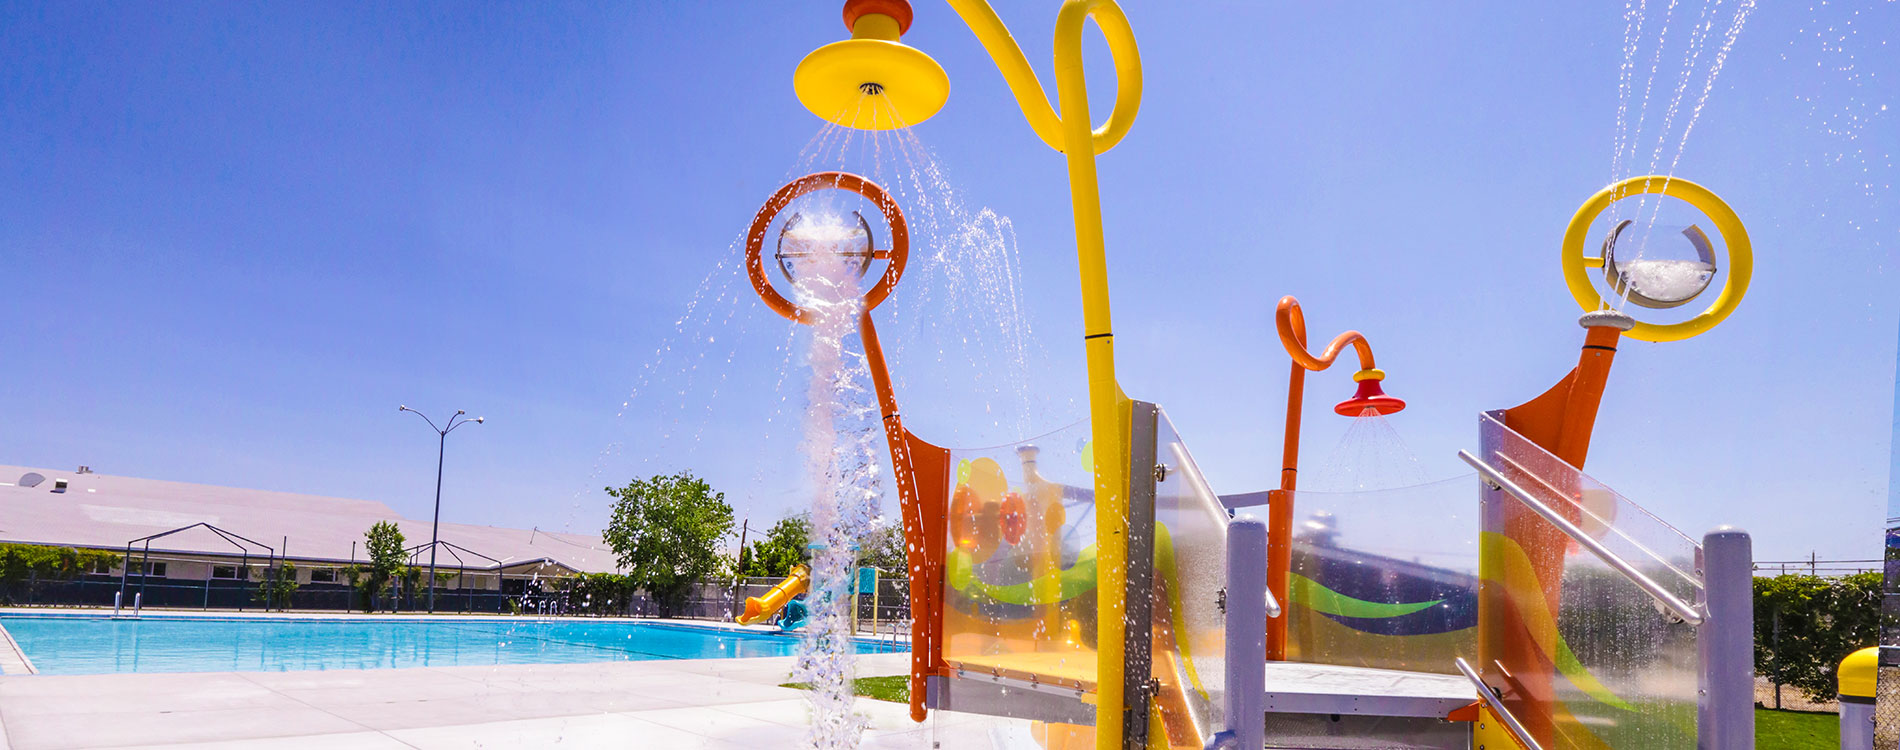 Traner Pool with water play feature